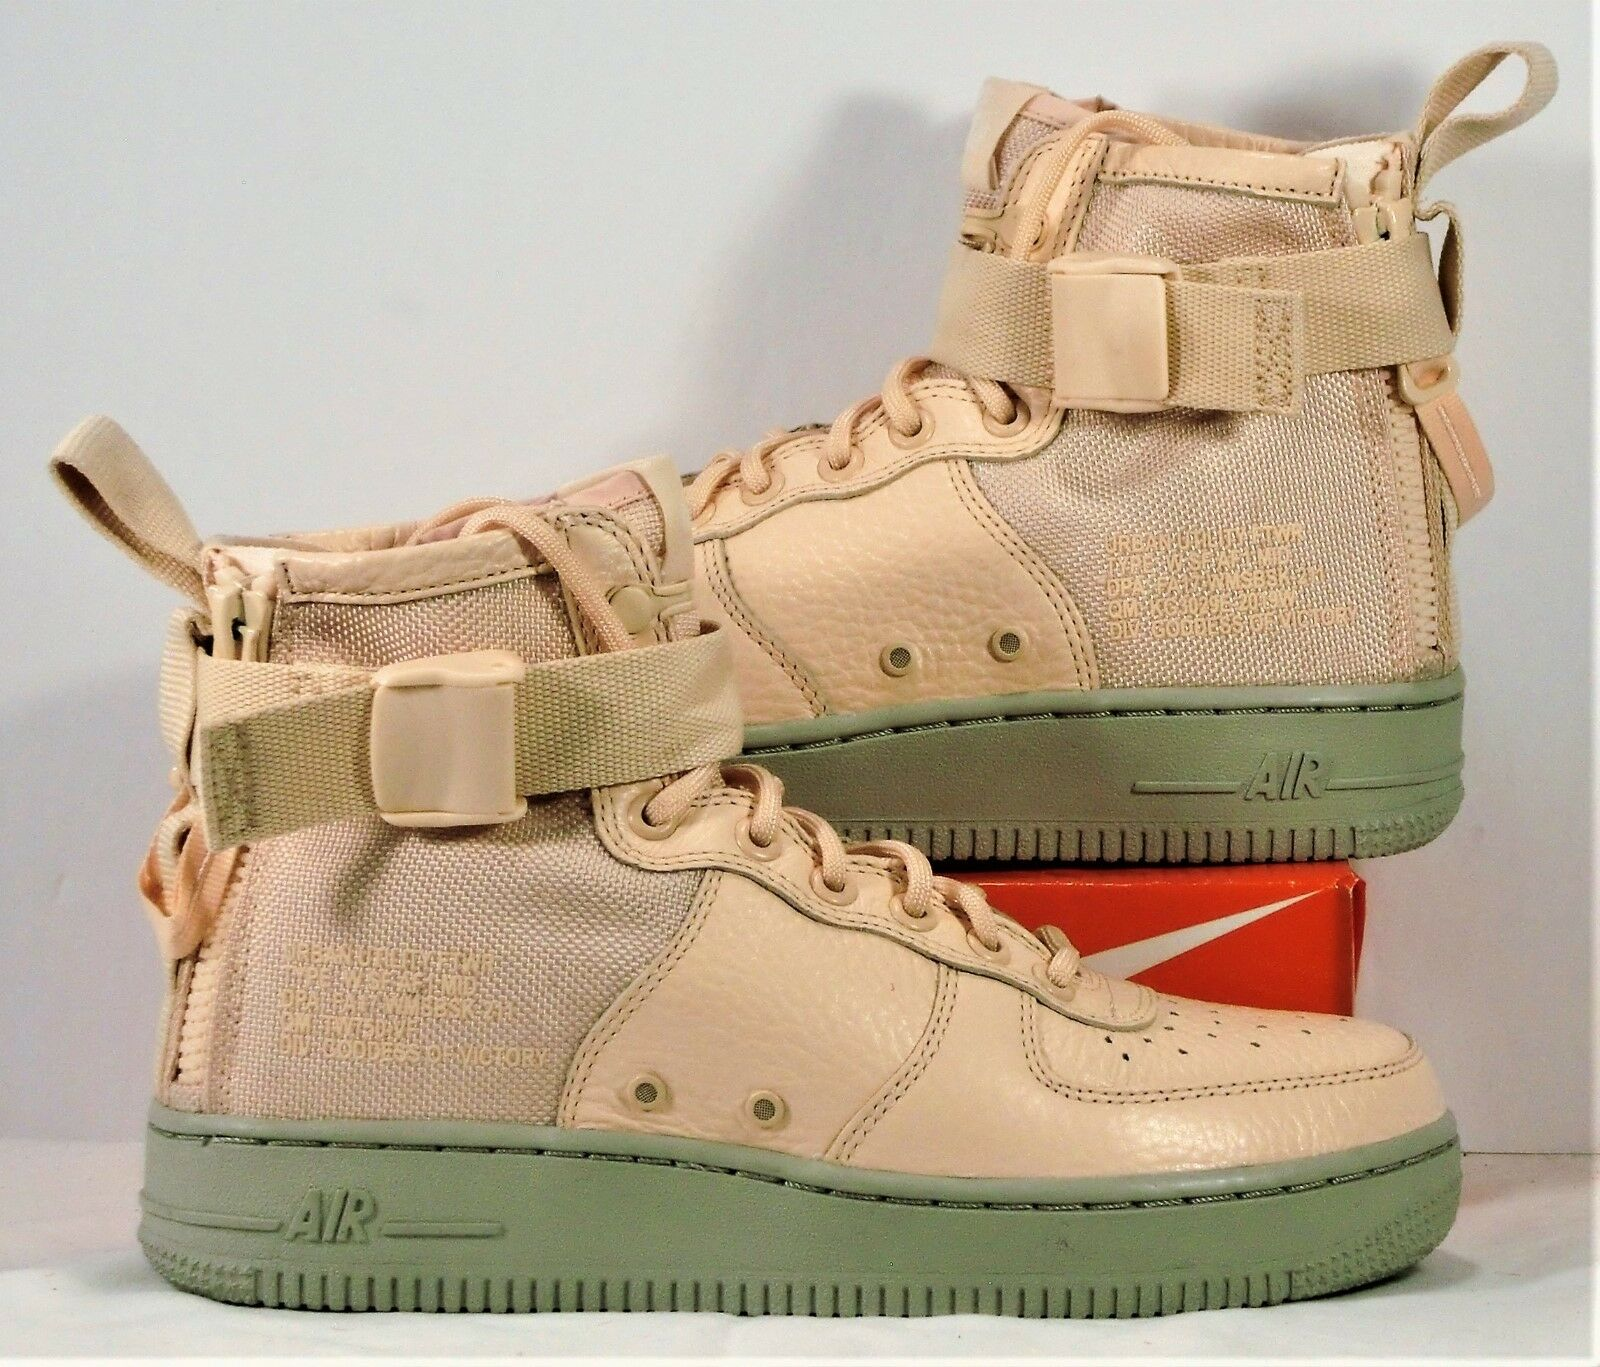 Nike SF AF1 Special Air Force Mid Field orange Quartz Sz 7 NEW AA3966 800 RARE